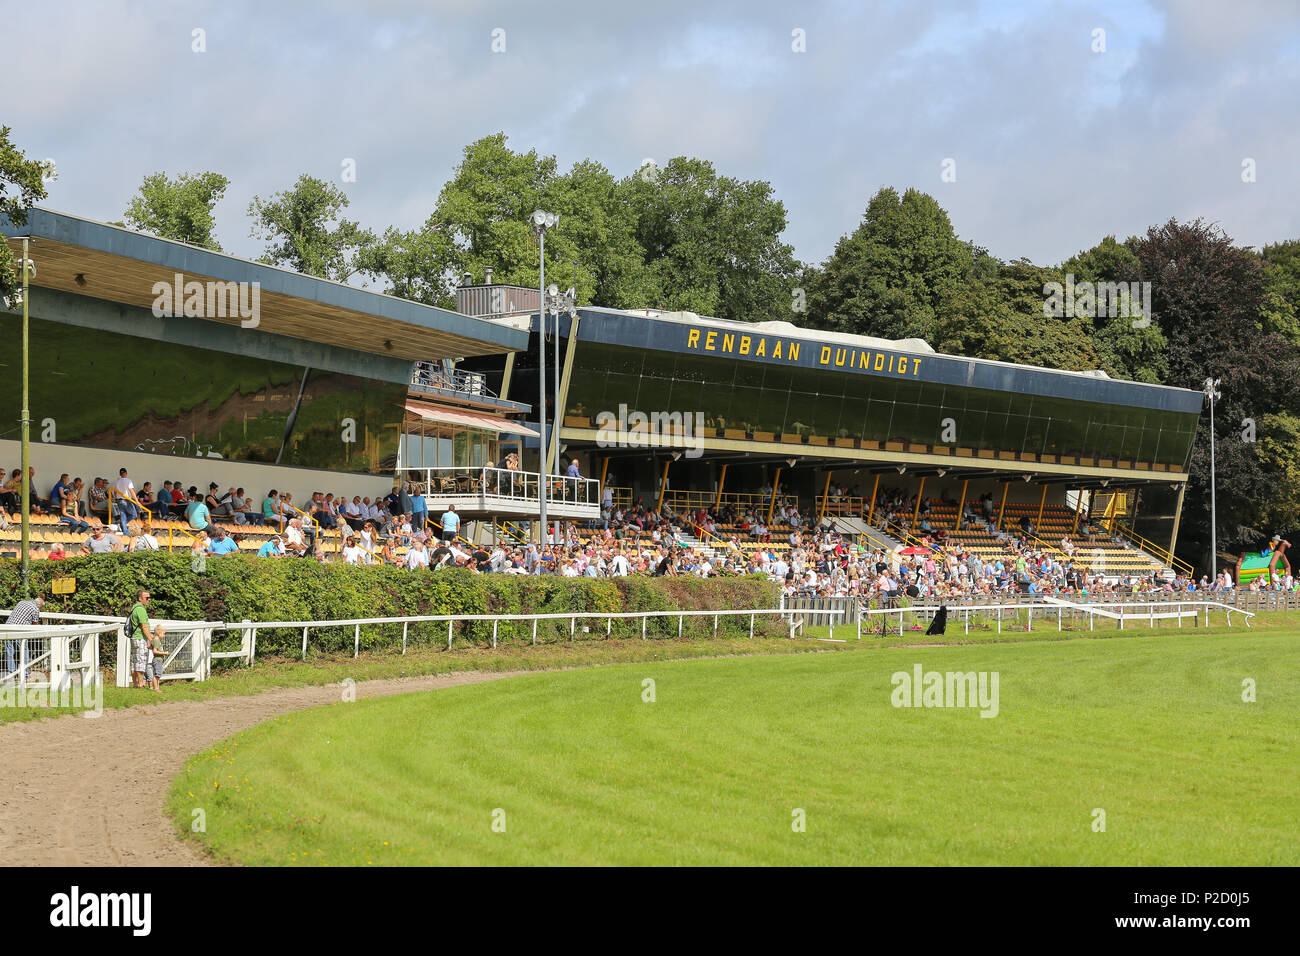 WASSENAAR, THE NETHERLANDS - AUGUST 28, 2016:  Horse race track Duindigt at derby day with crowd at the stands ready to place their bets. - Stock Image